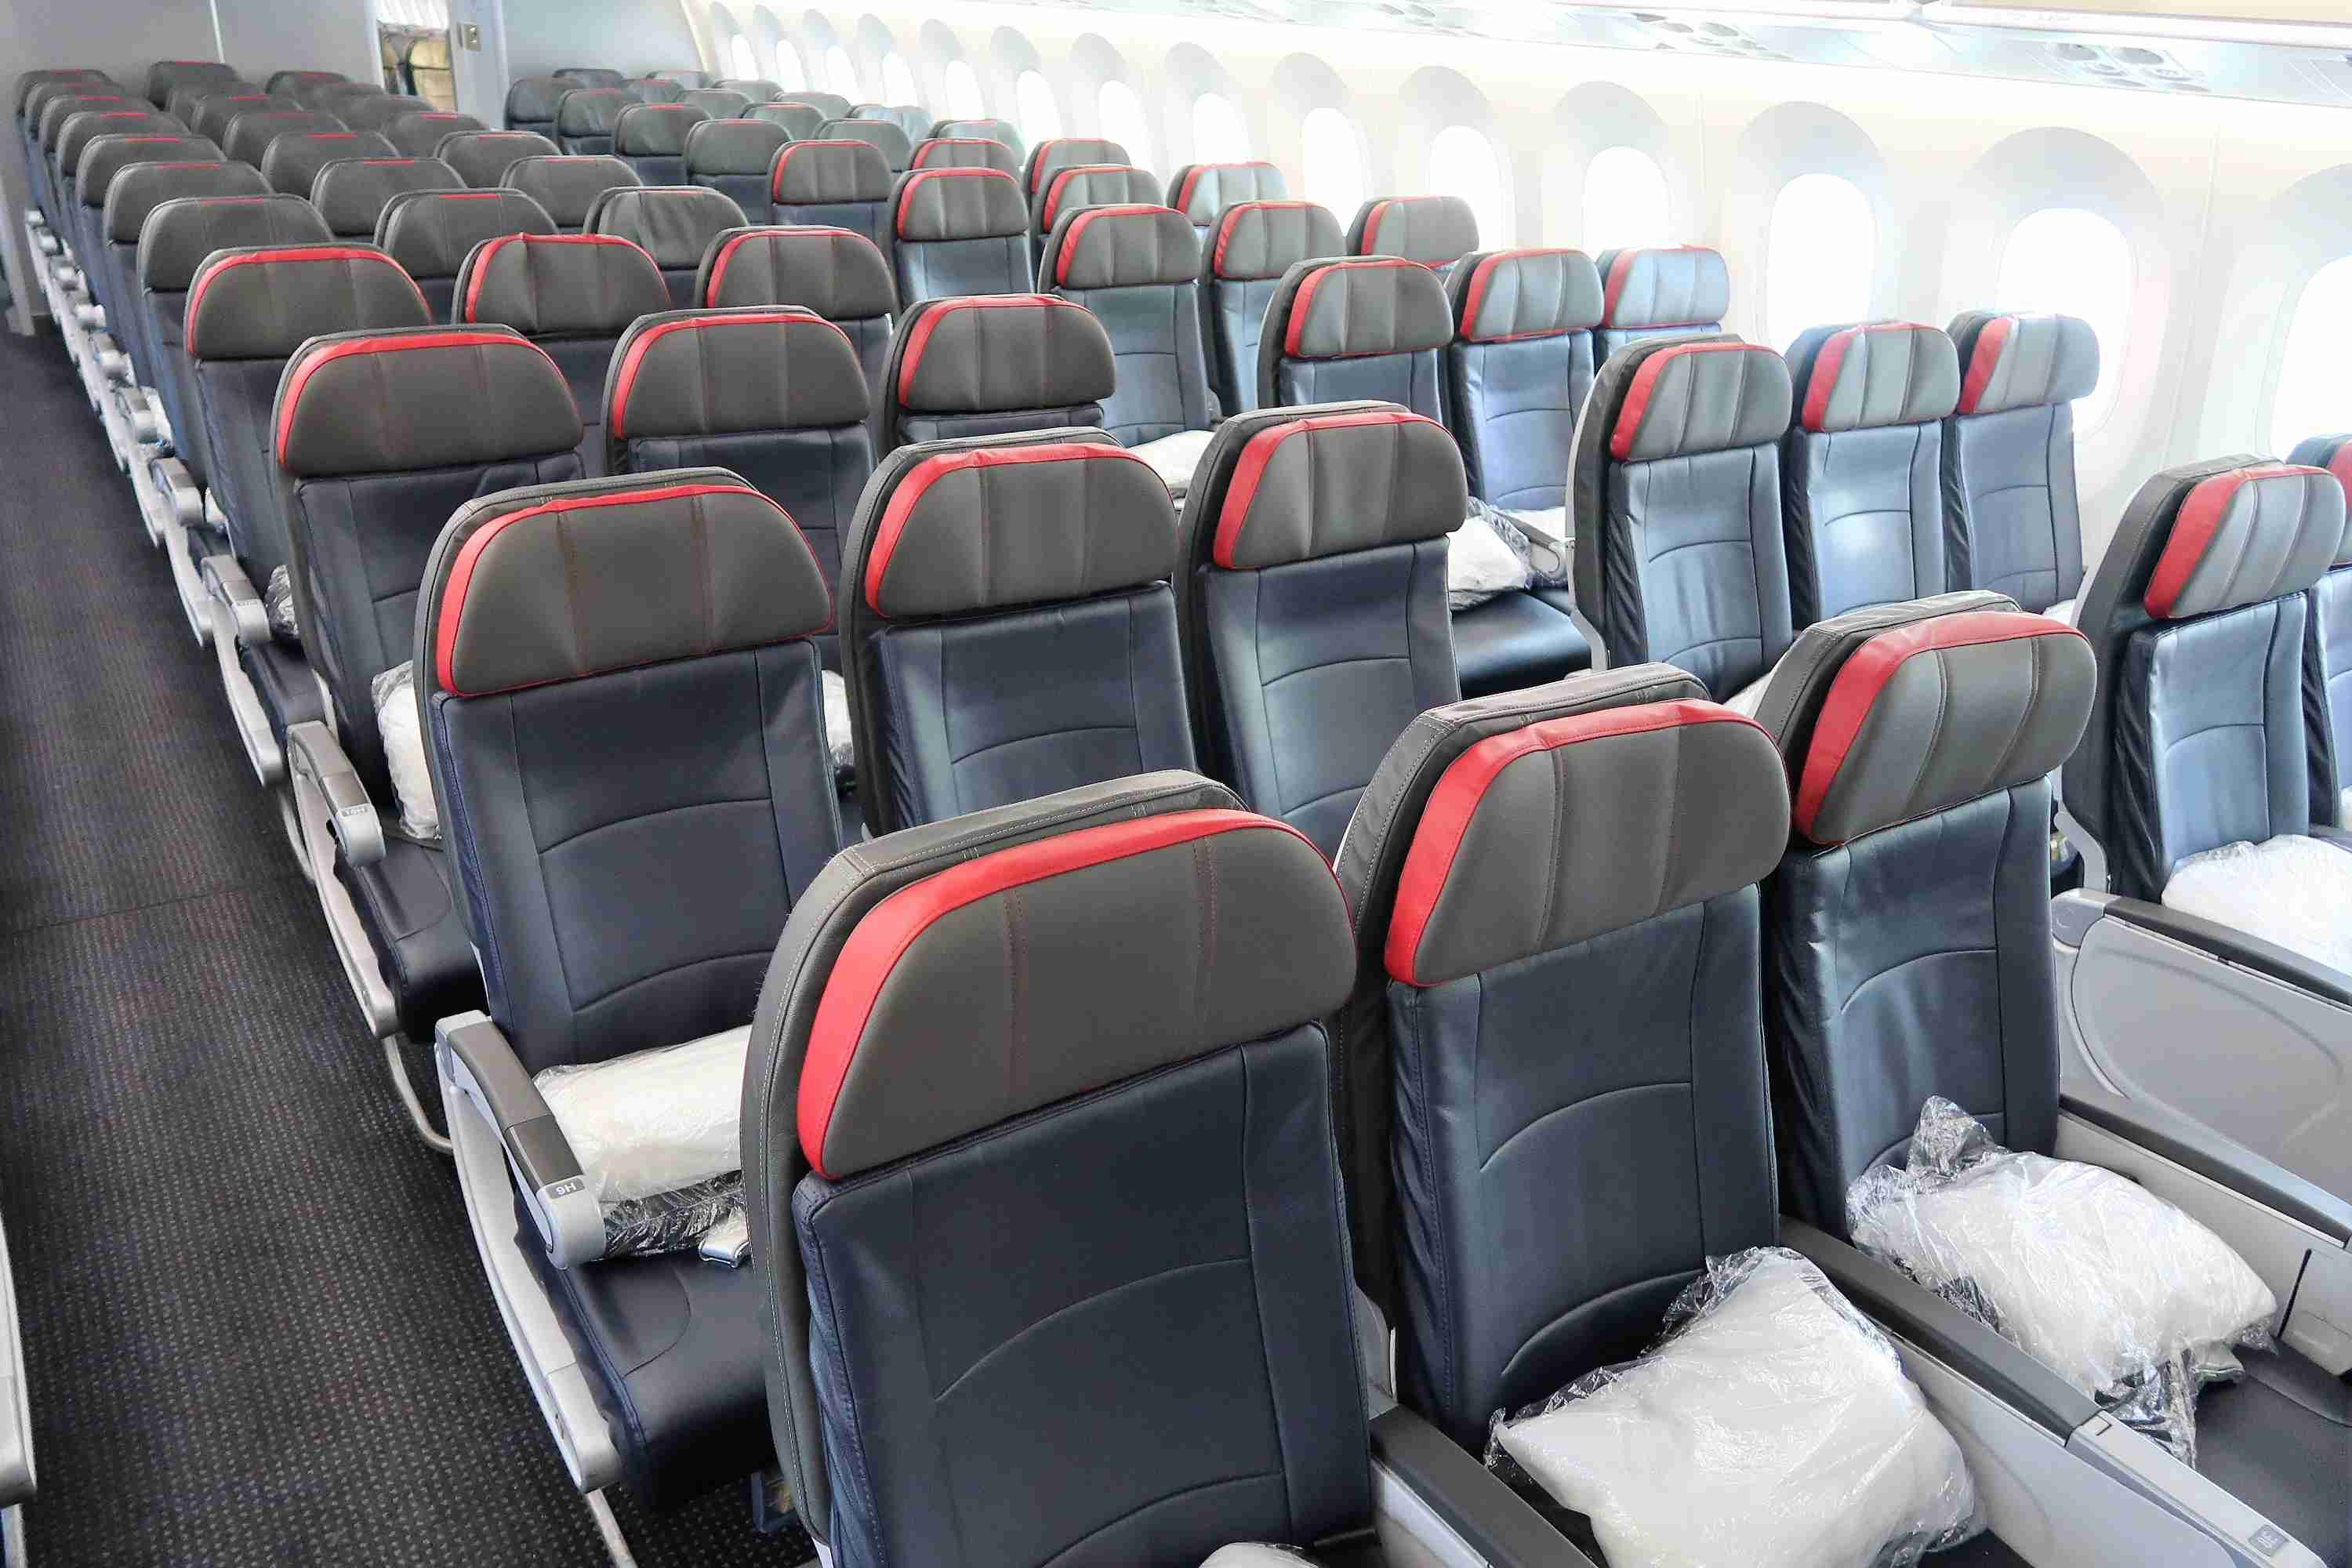 Economy seats on American Airlines Boeing 787-8. (Photo by Katie Genter / The Points Guy)